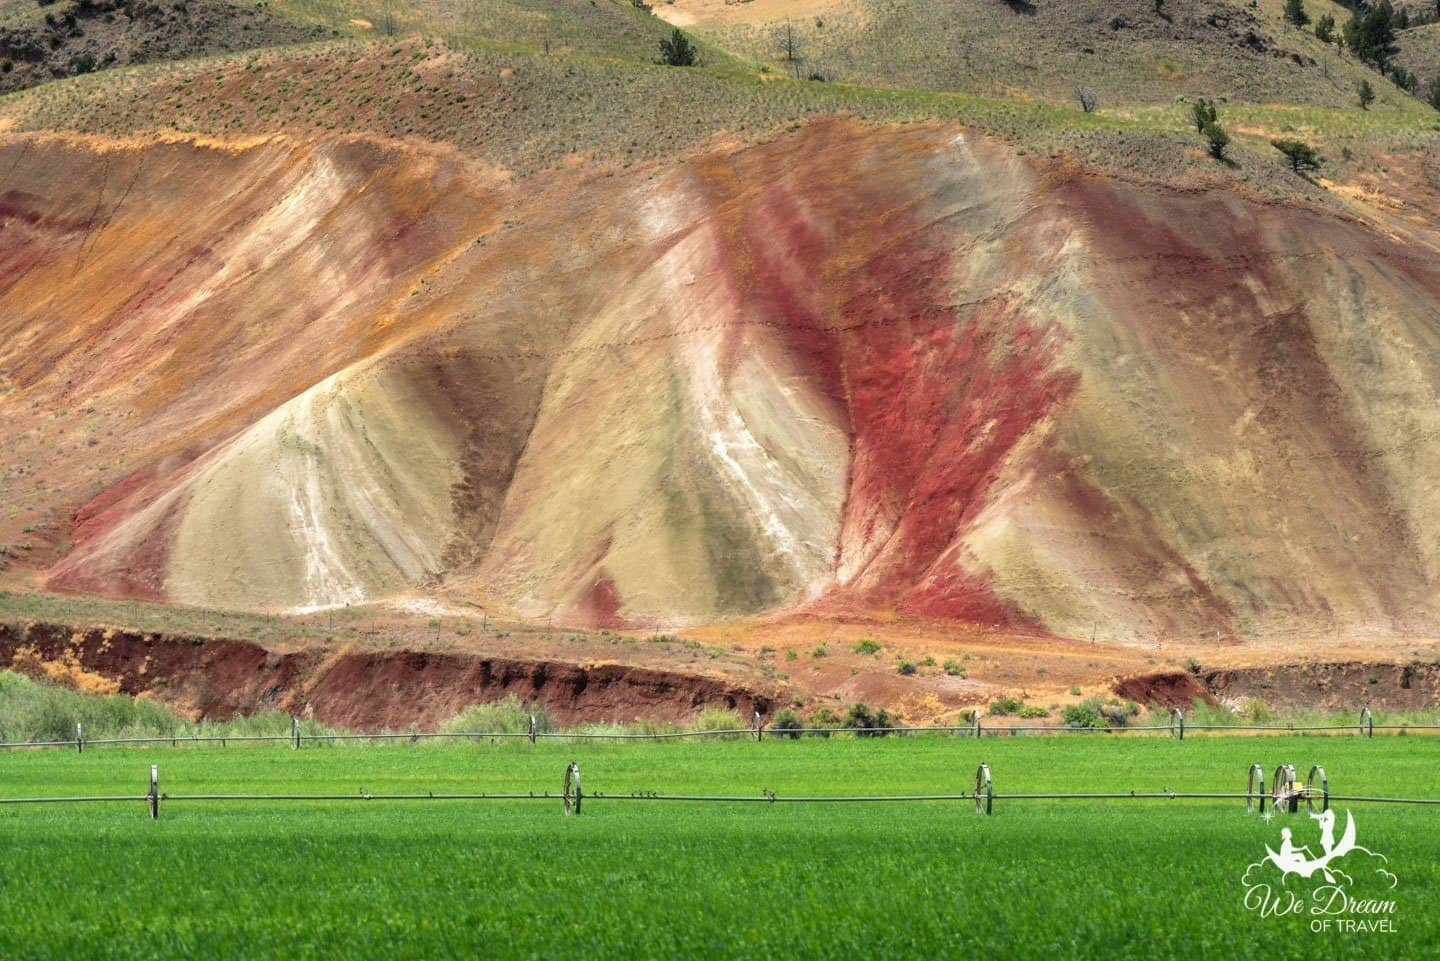 Exploring the Painted Hills on a visit to Oregon